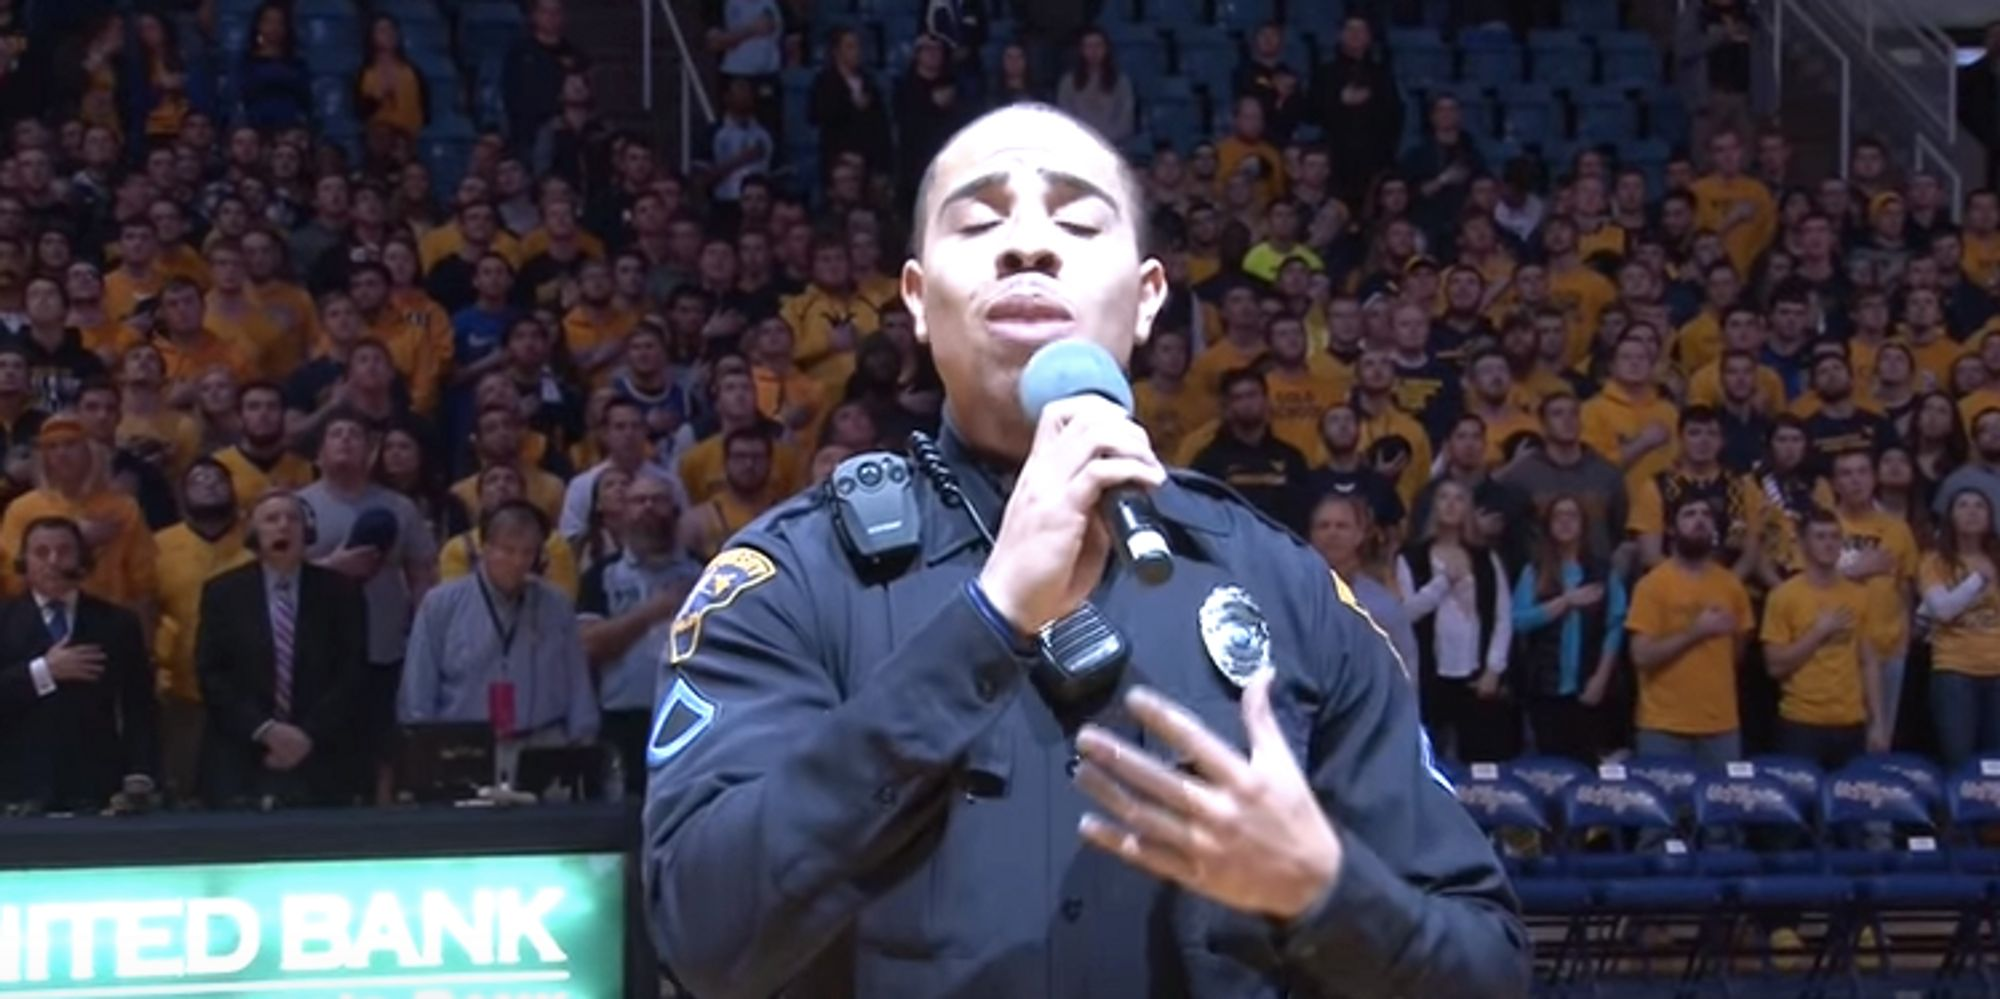 west virginia university pictures videos breaking news cop steps in to sing national anthem when performer can t make it slays in uniform